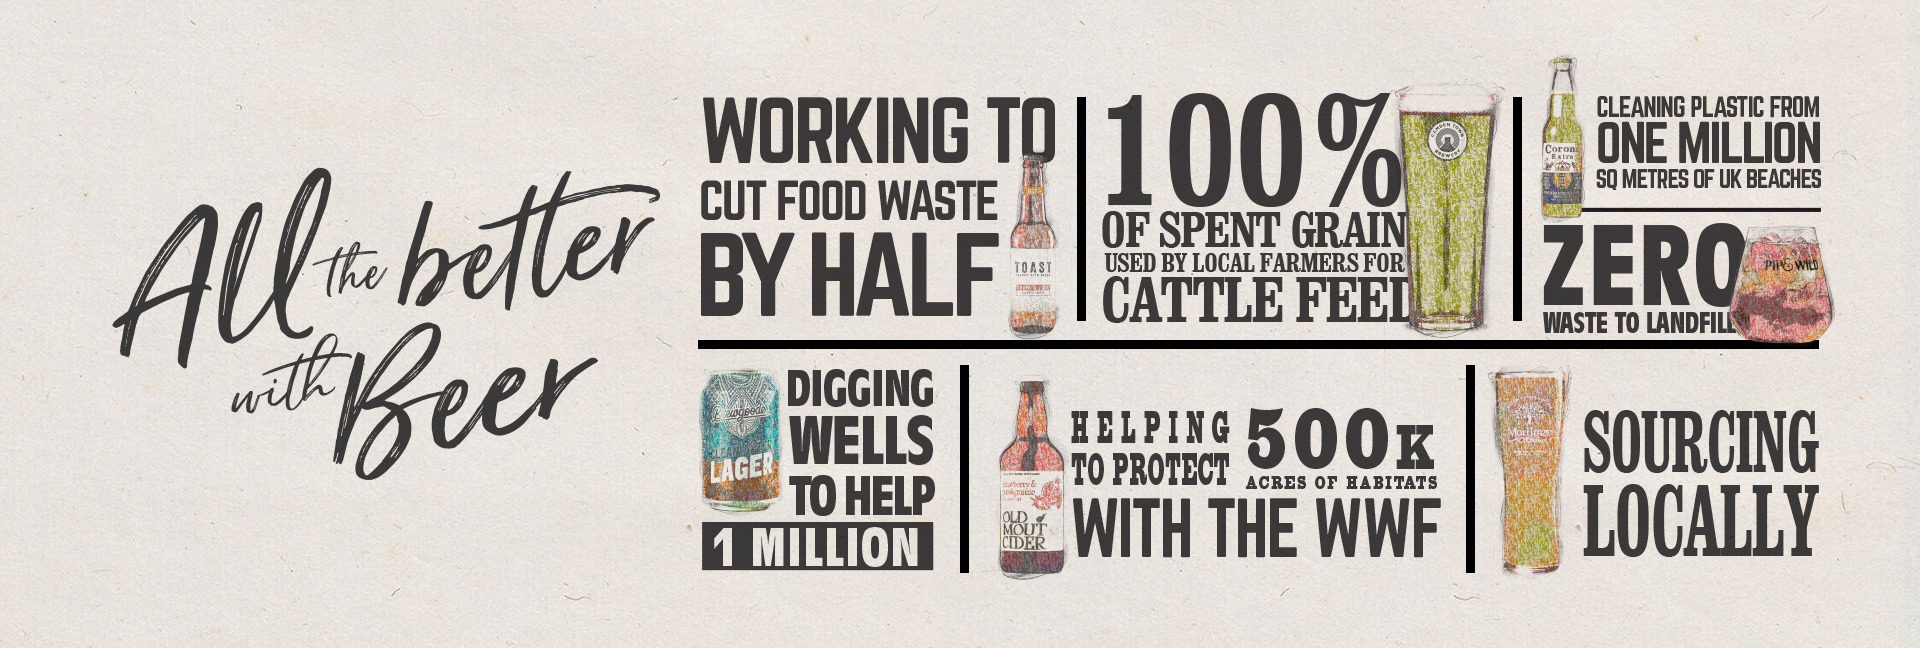 abo-beercampaign-offer-sustainability-banner-noCTA.jpg